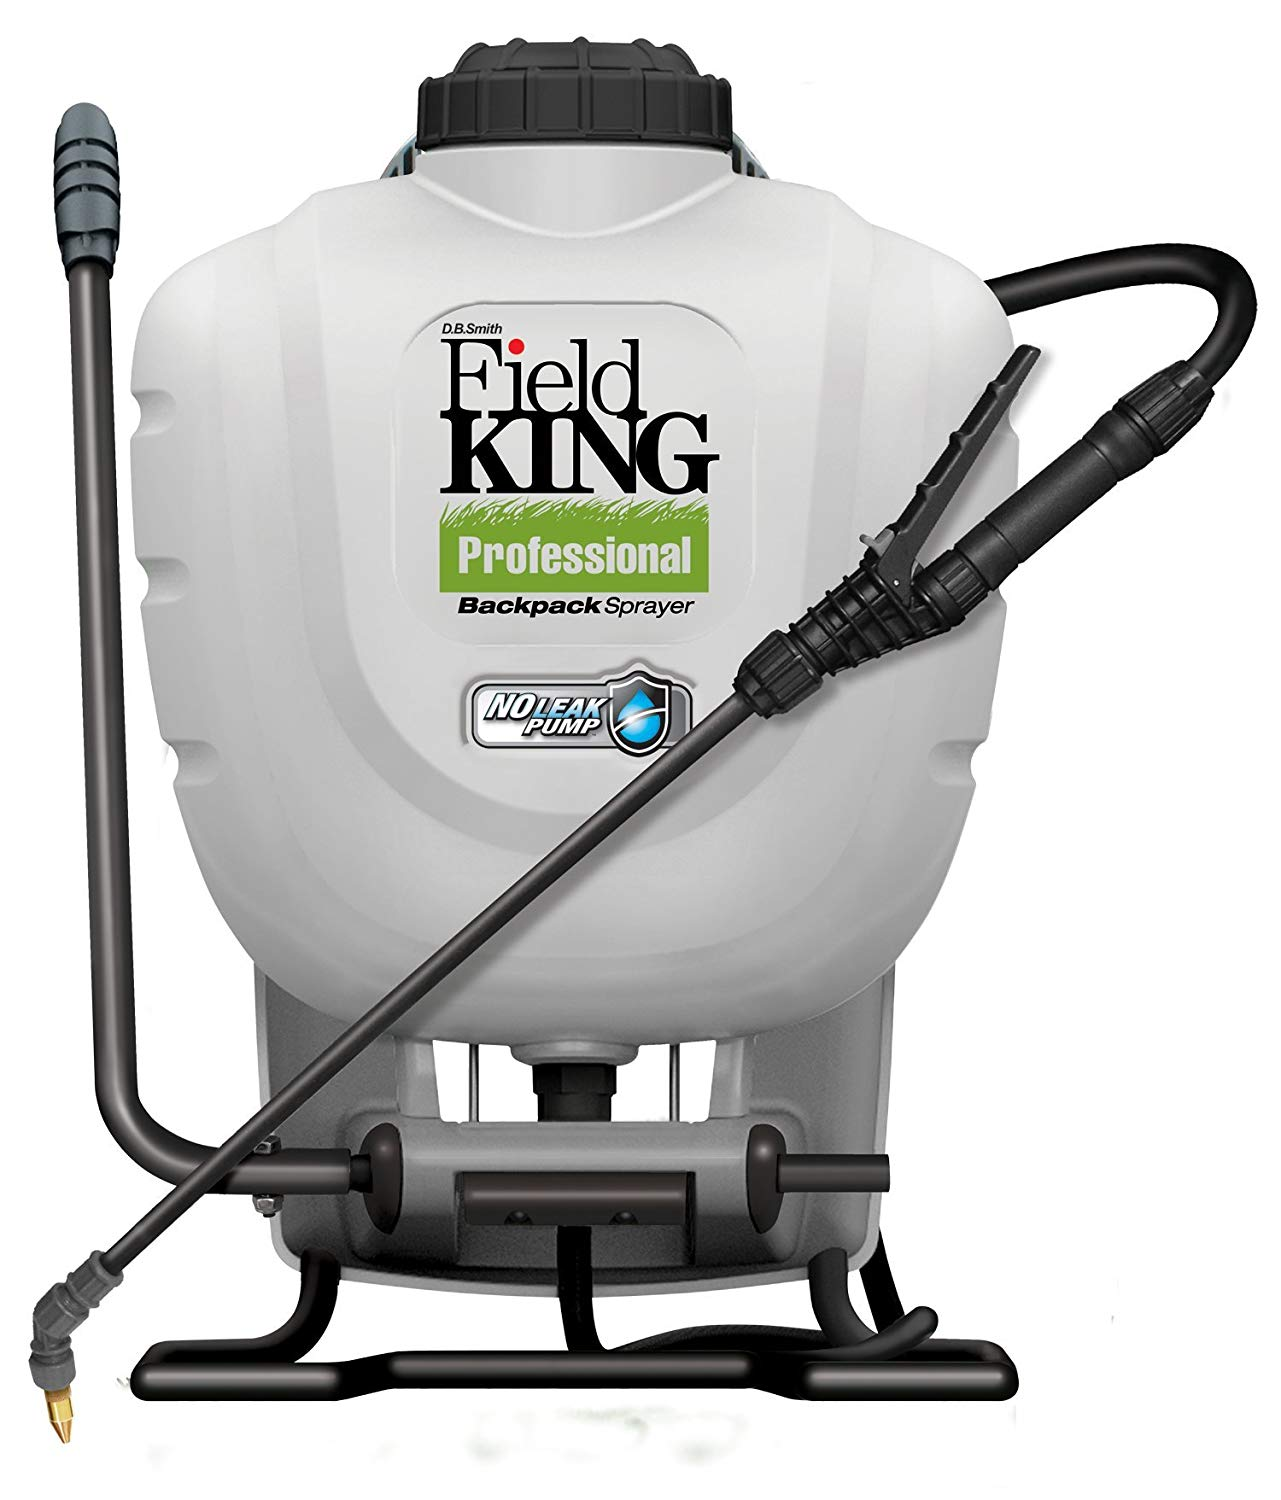 Top 10 Best Garden Sprayers Review 2020 1